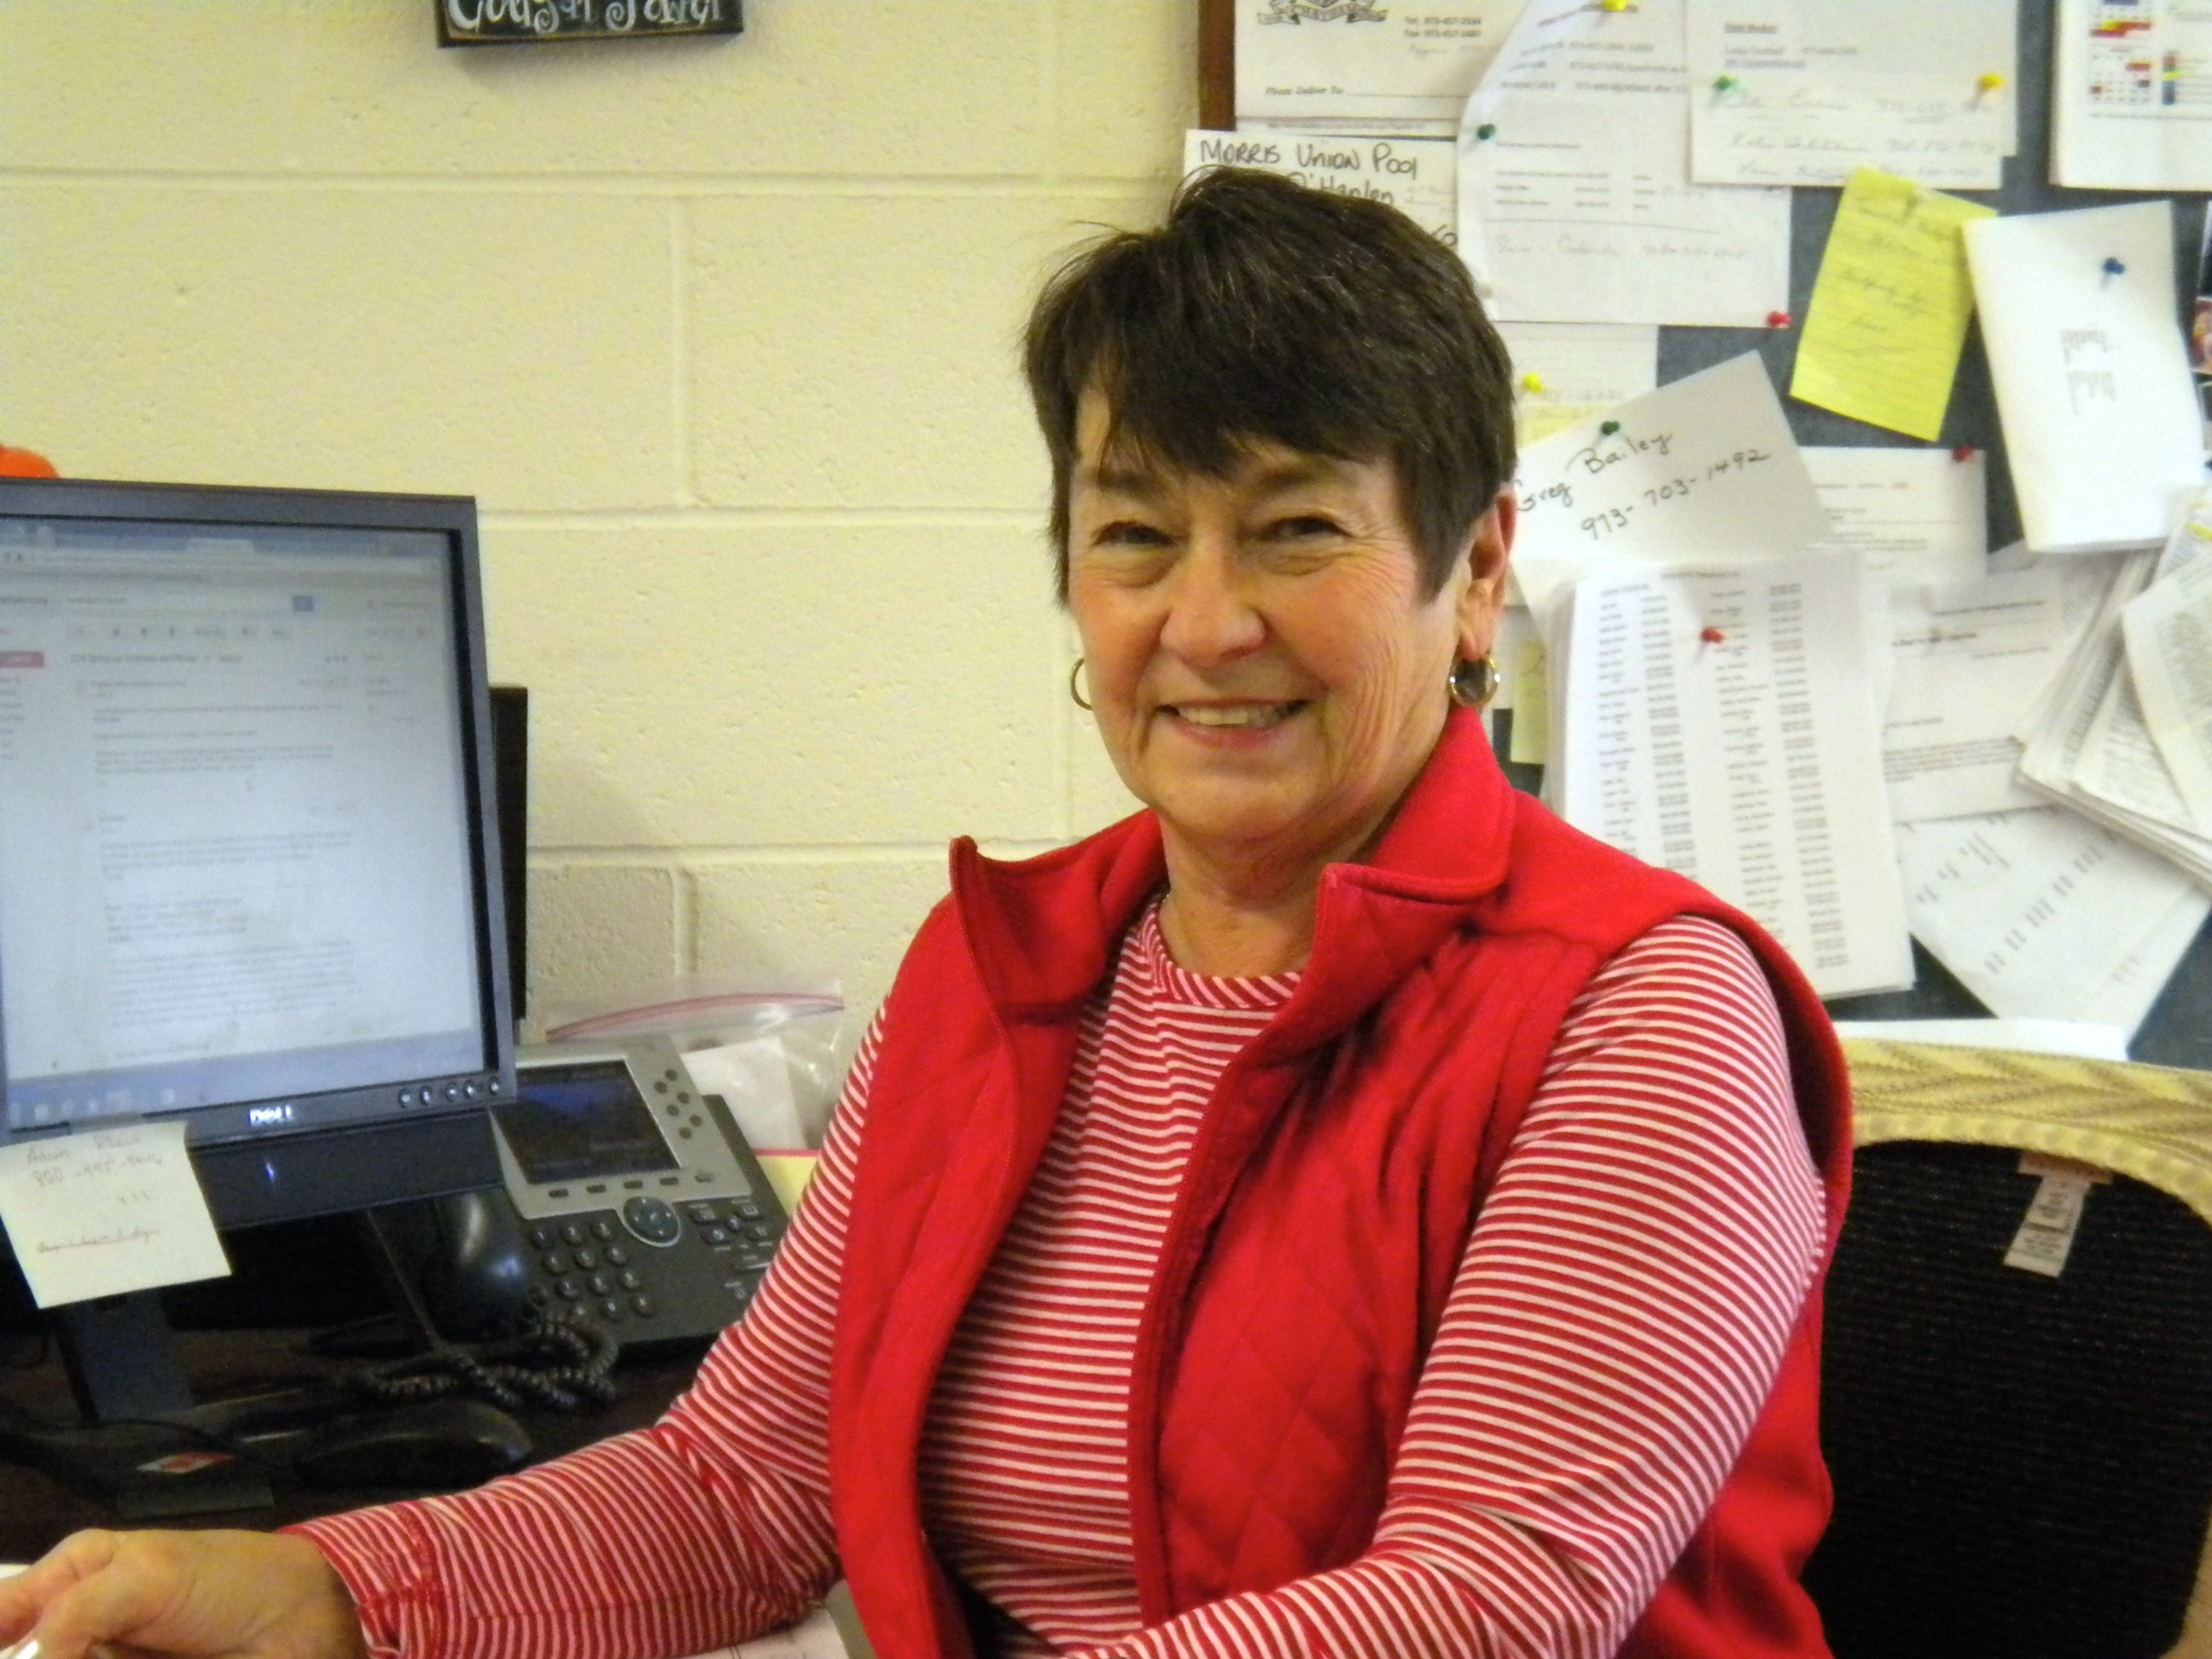 Chatham's Leslie Named Administrative Assistant of the Year By State Athletic Directors